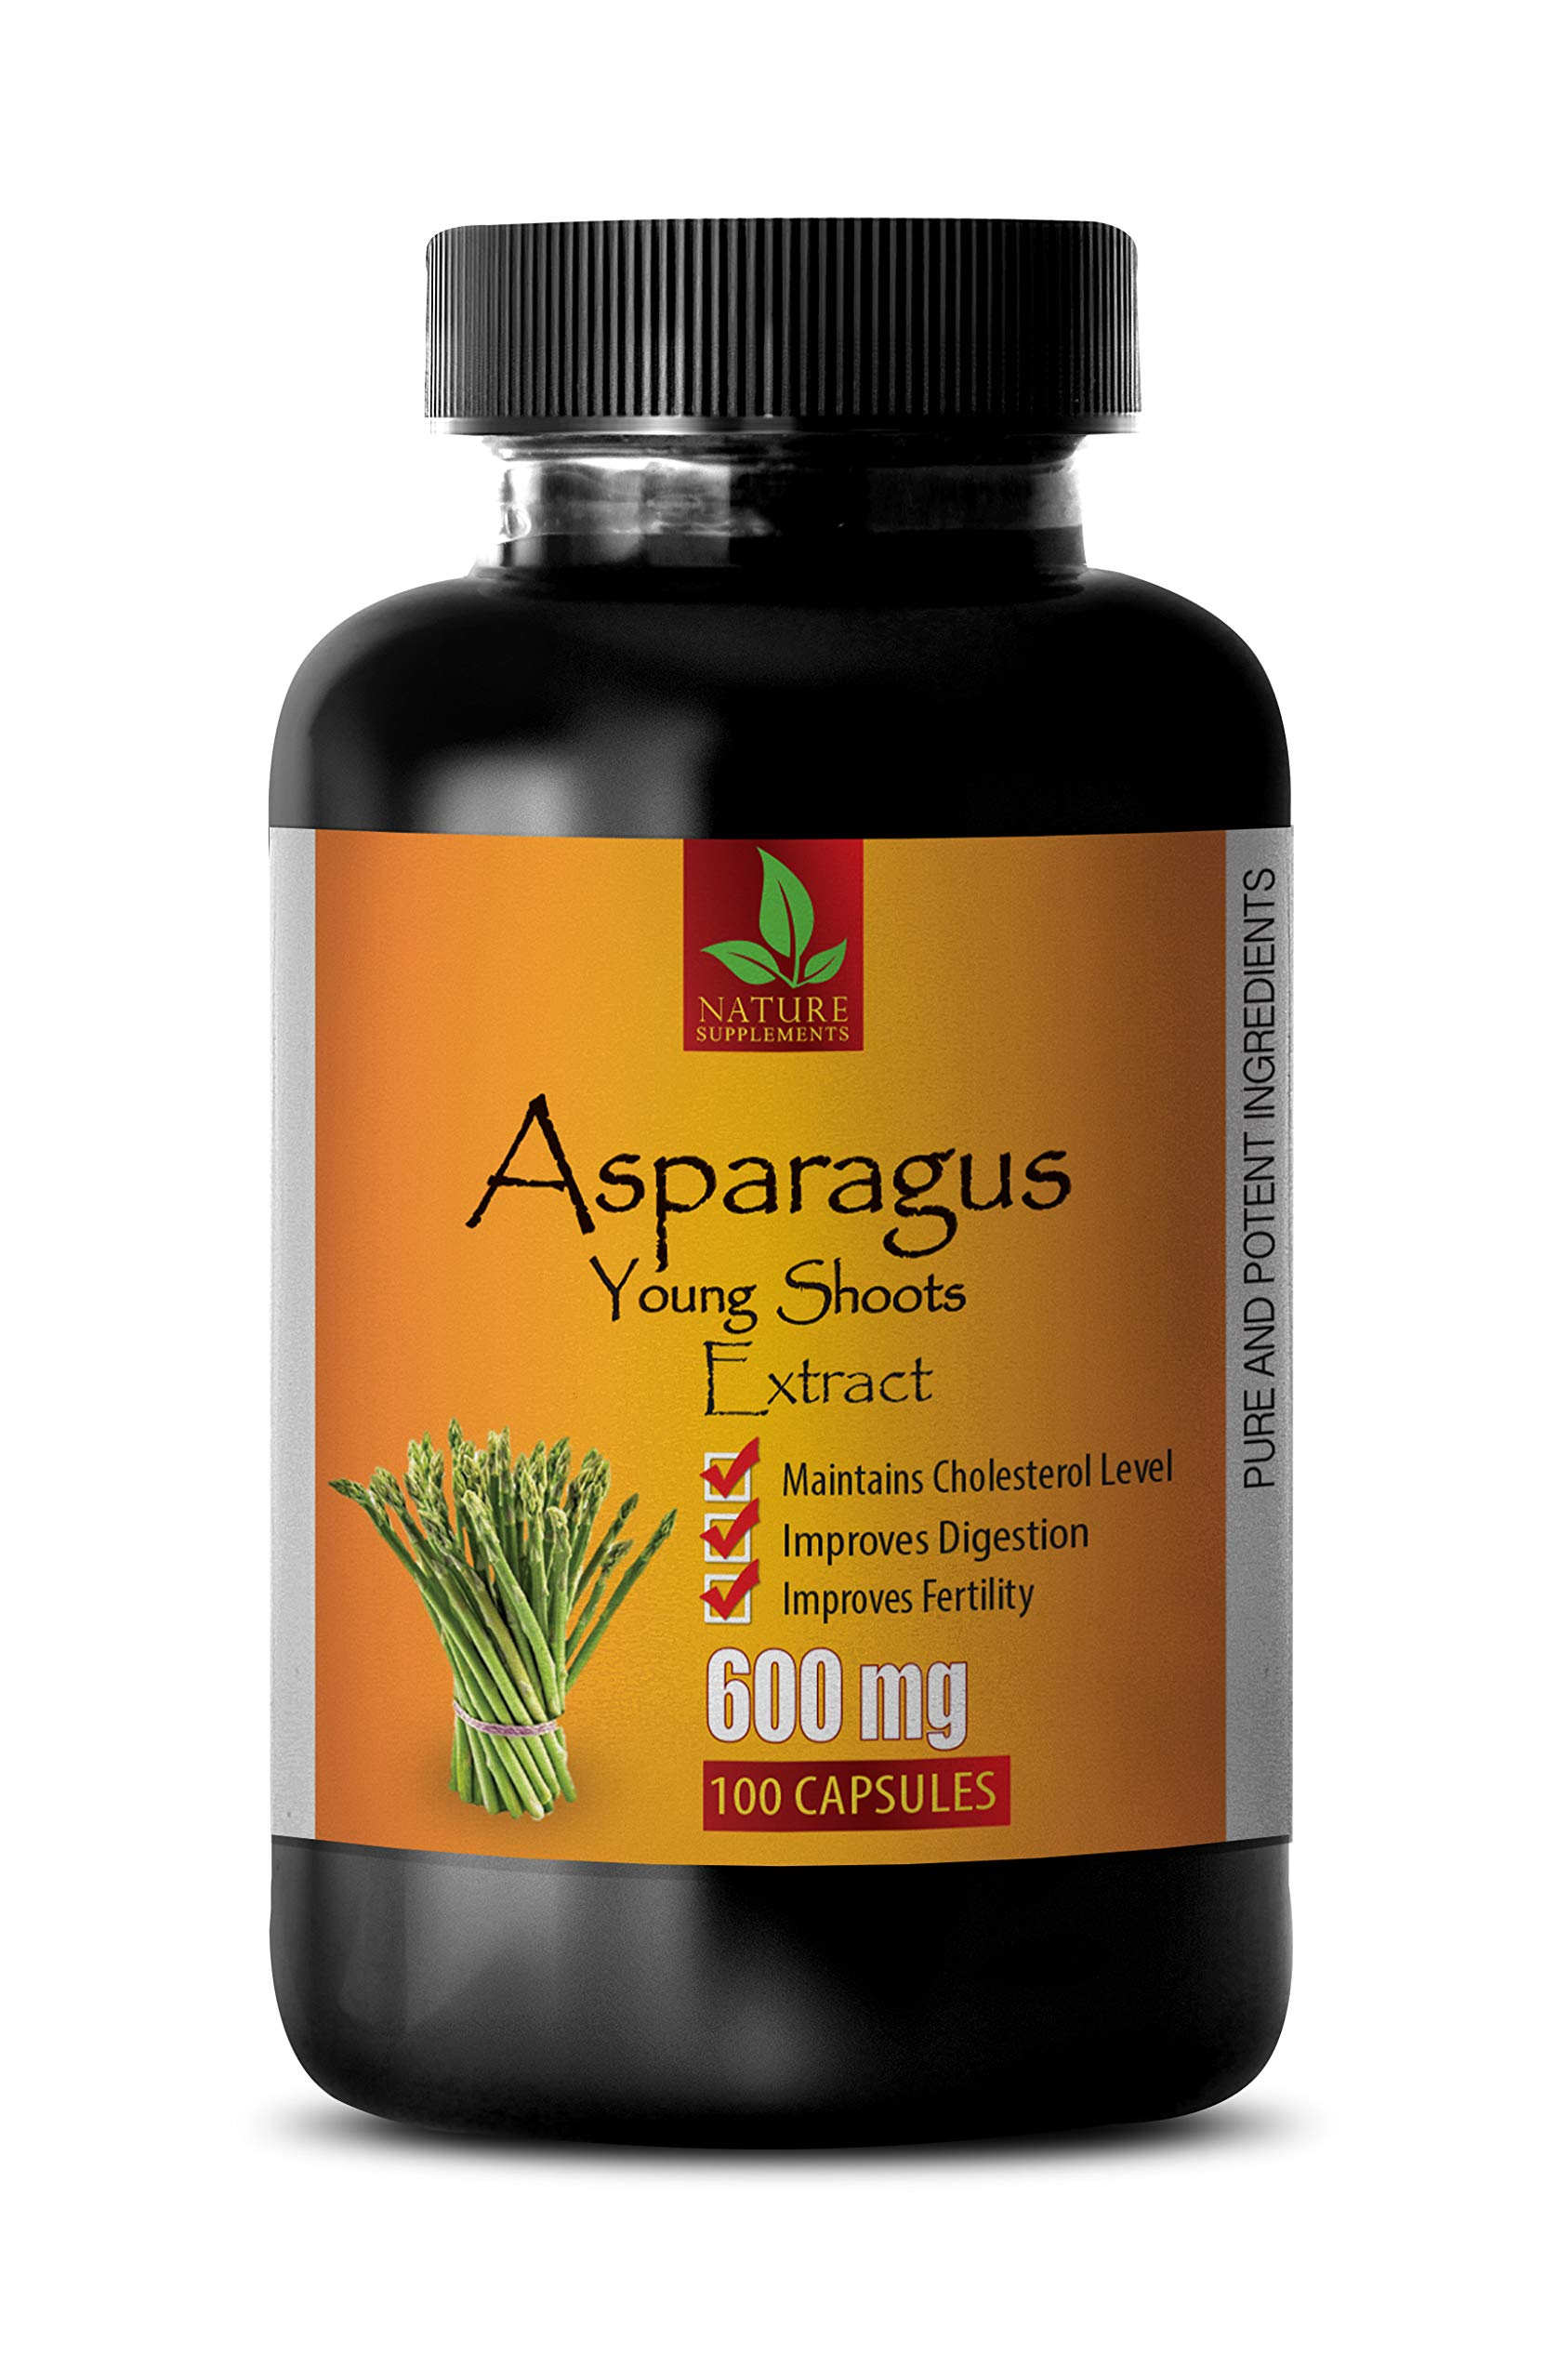 Diuretic and Anti-inflammatory Pill - Asparagus Young Shoots Extract 600 MG - Pure and Potent Ingredients - Asparagus Capsules 600mg - 1 Bottle 100 Capsules by NATURE SUPPLEMENTS